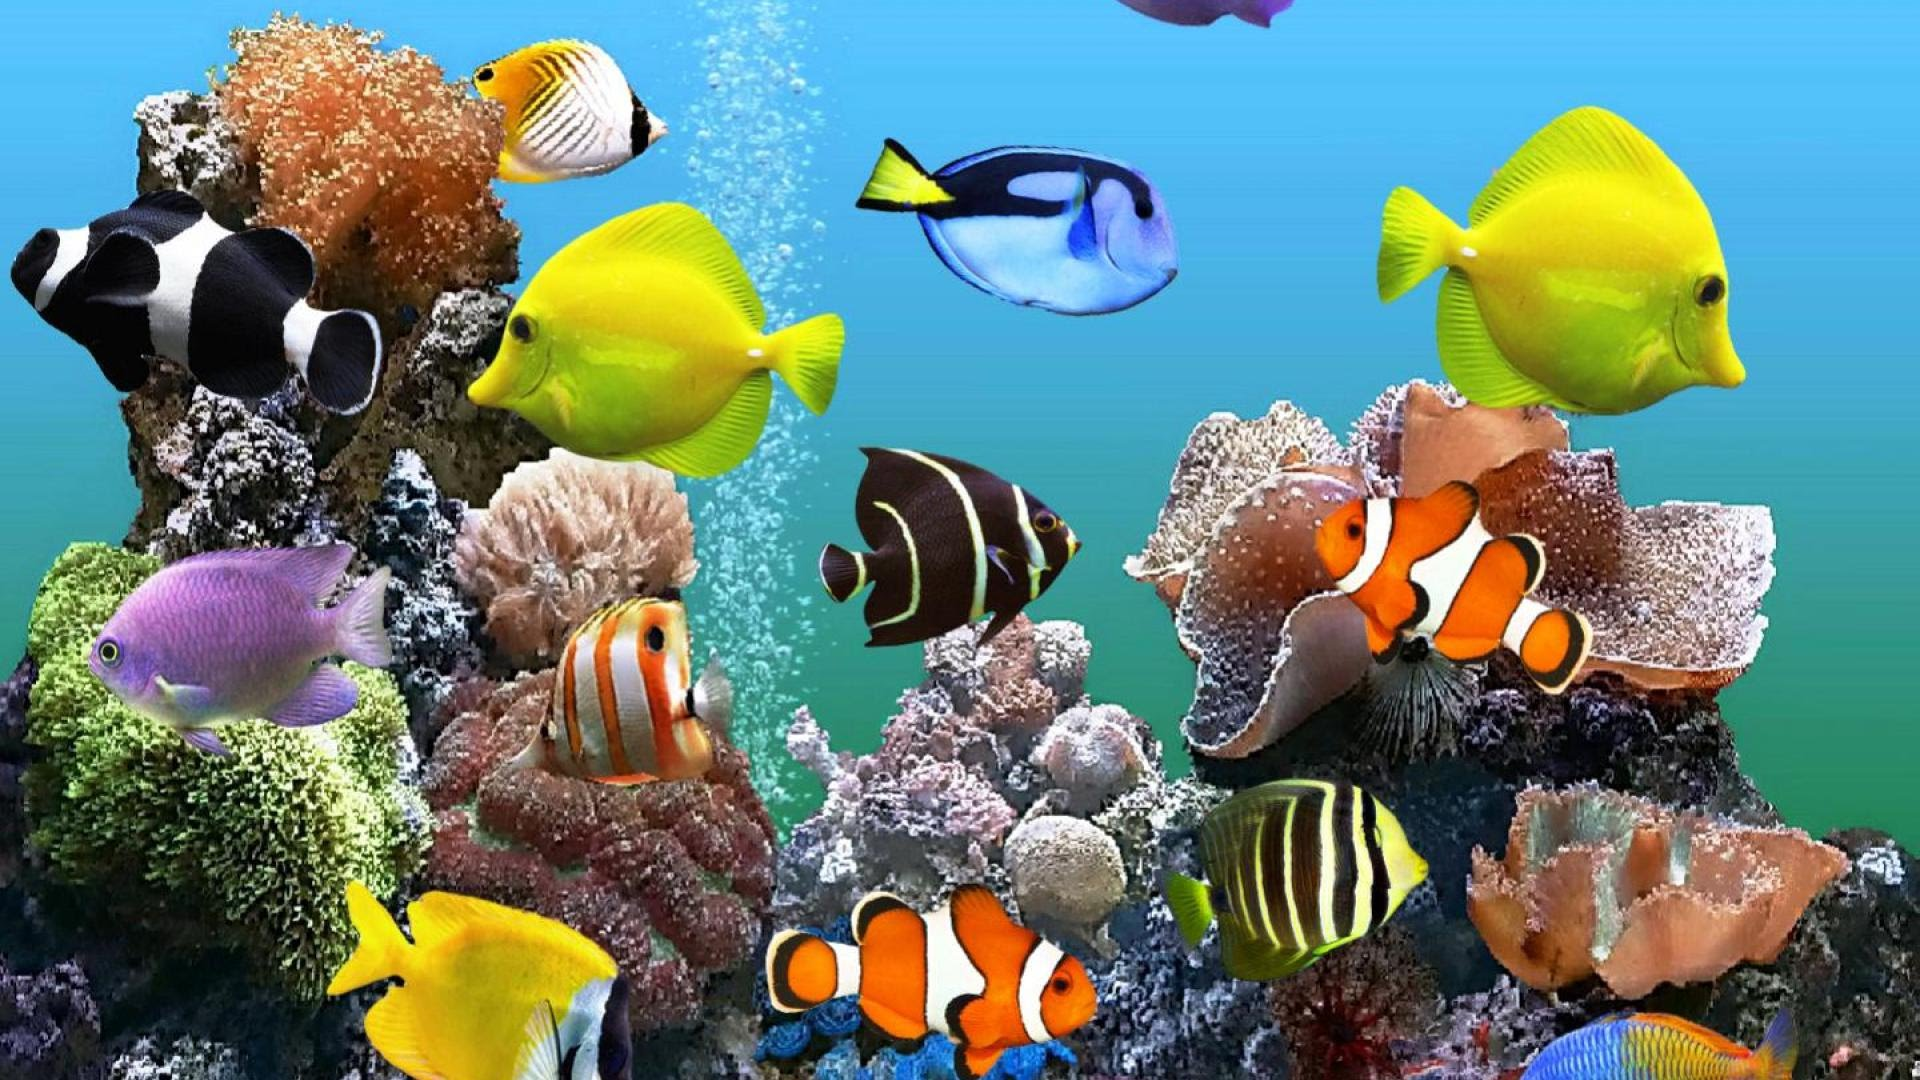 aquarium wallpaper hd - photo #39